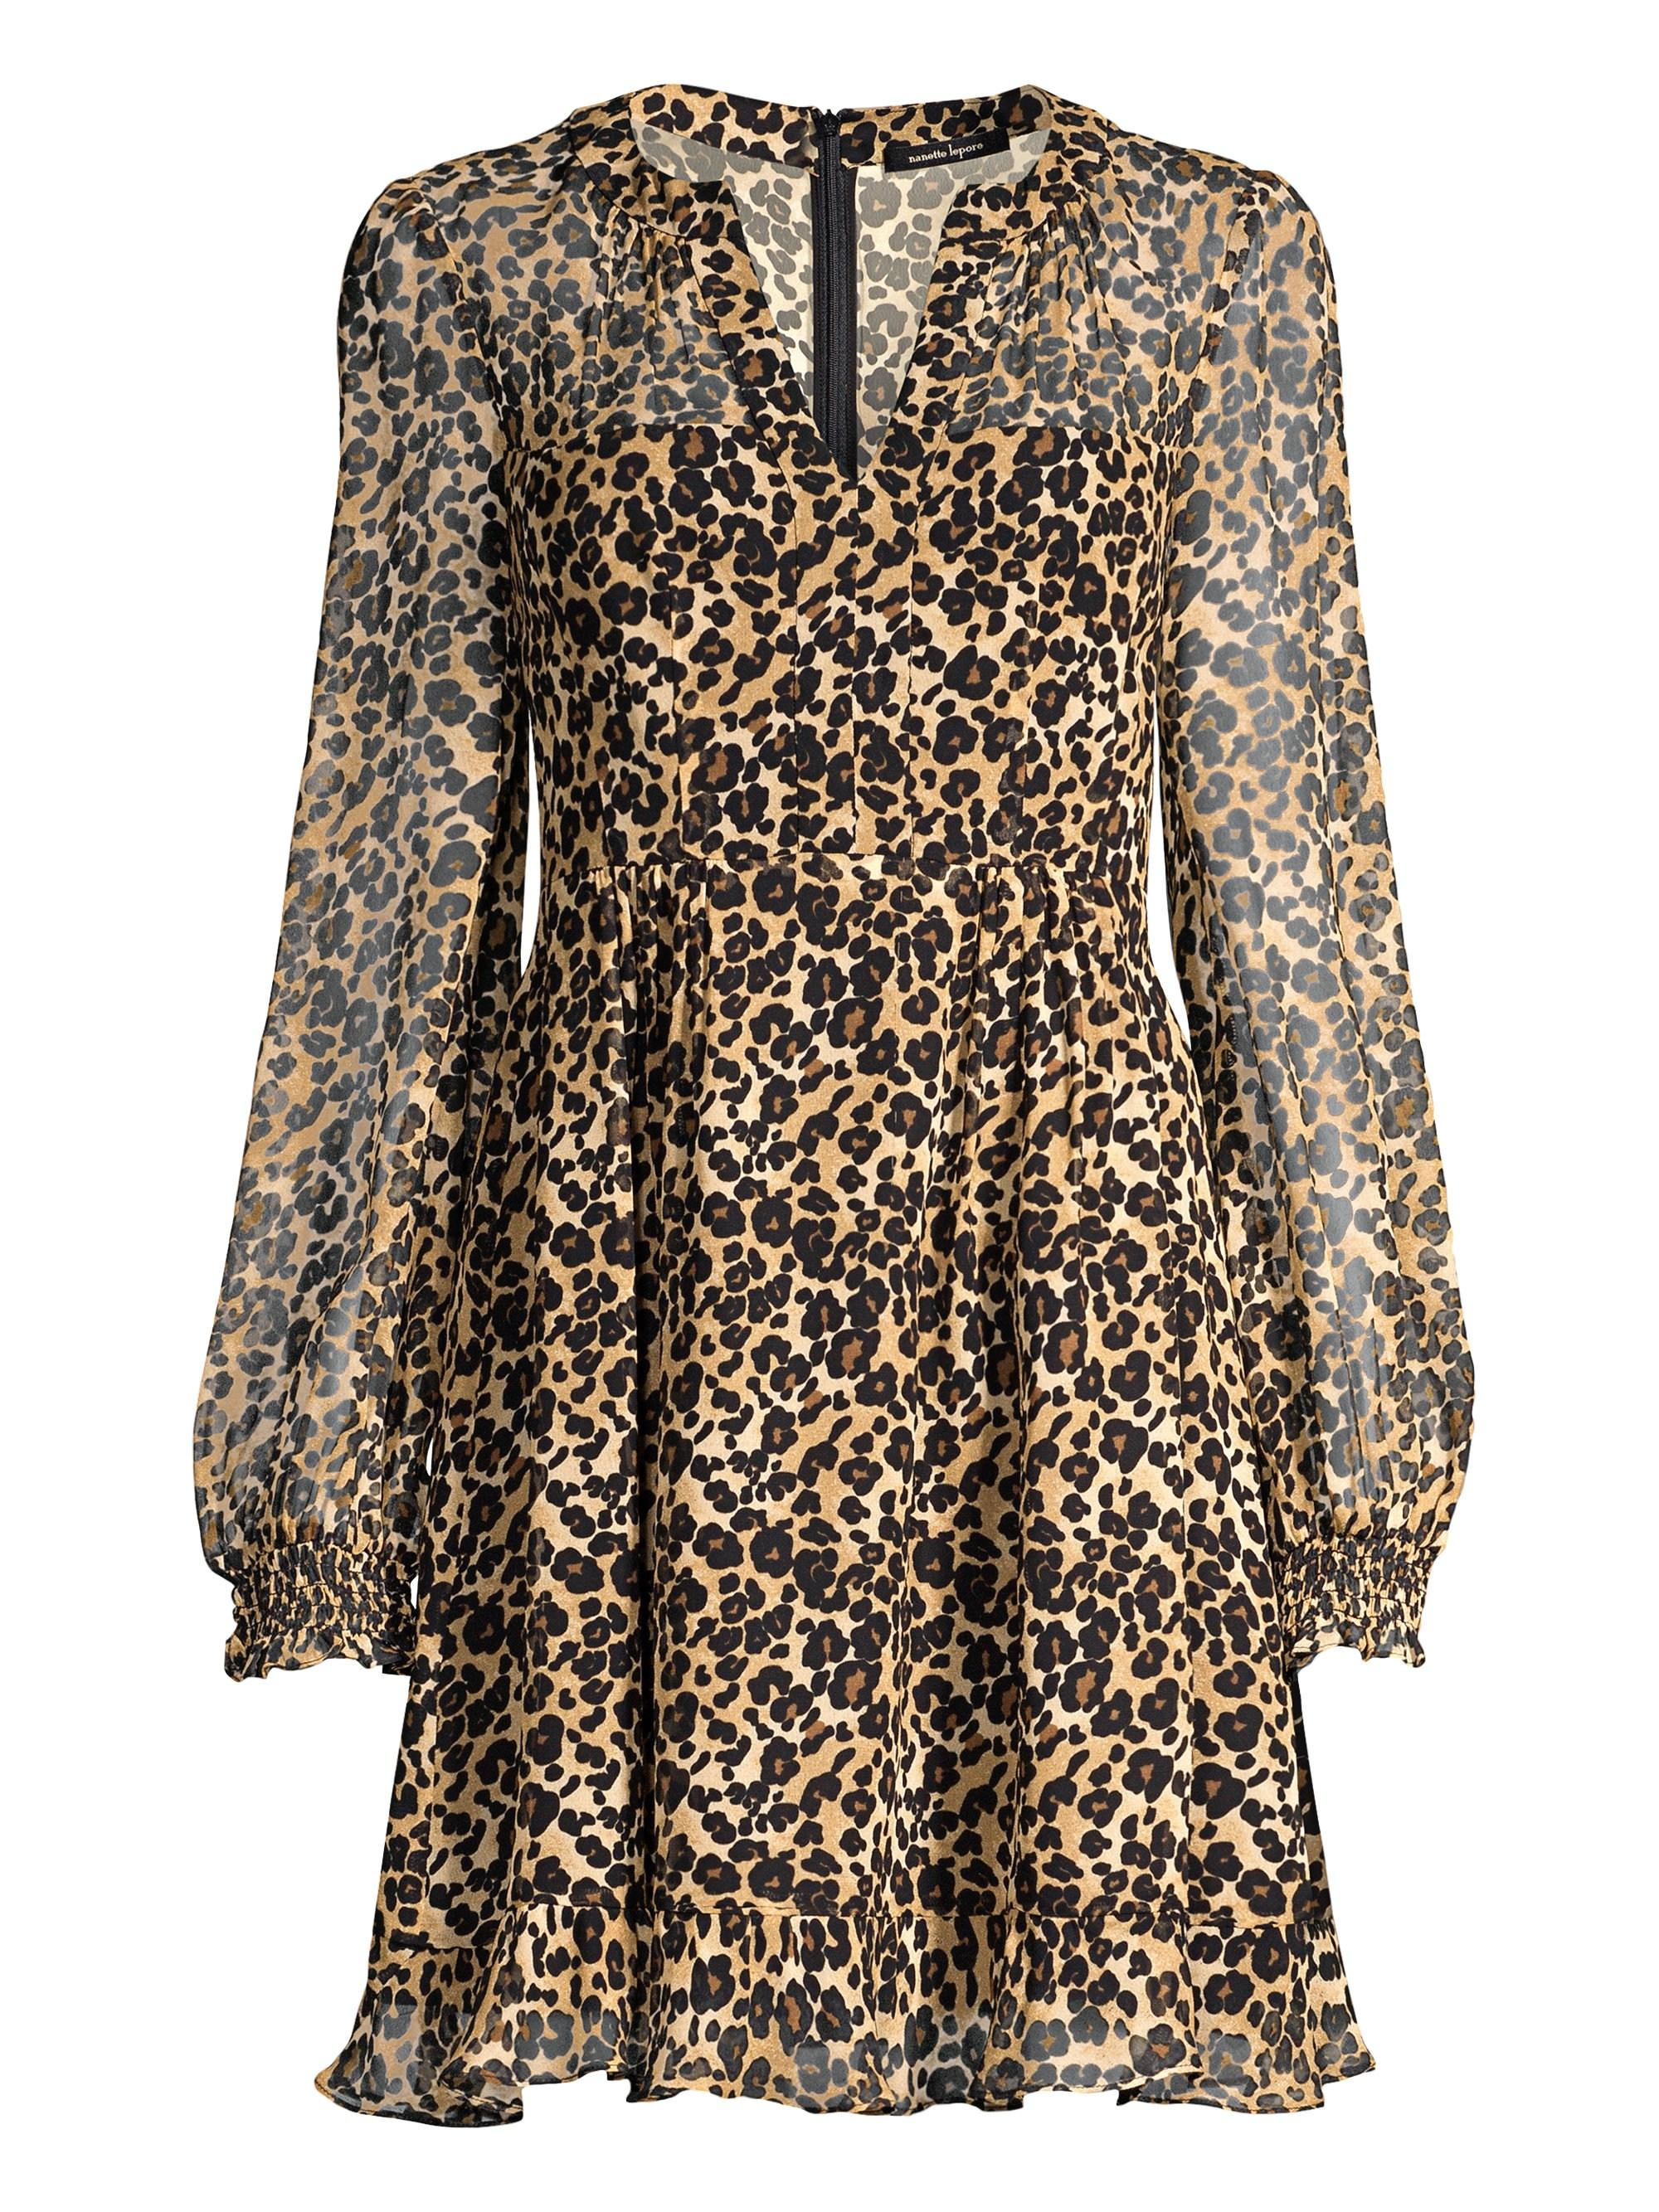 a855b5fd3912 Lyst - Nanette Lepore Cactus Animal Print Fit-&-flare Dress